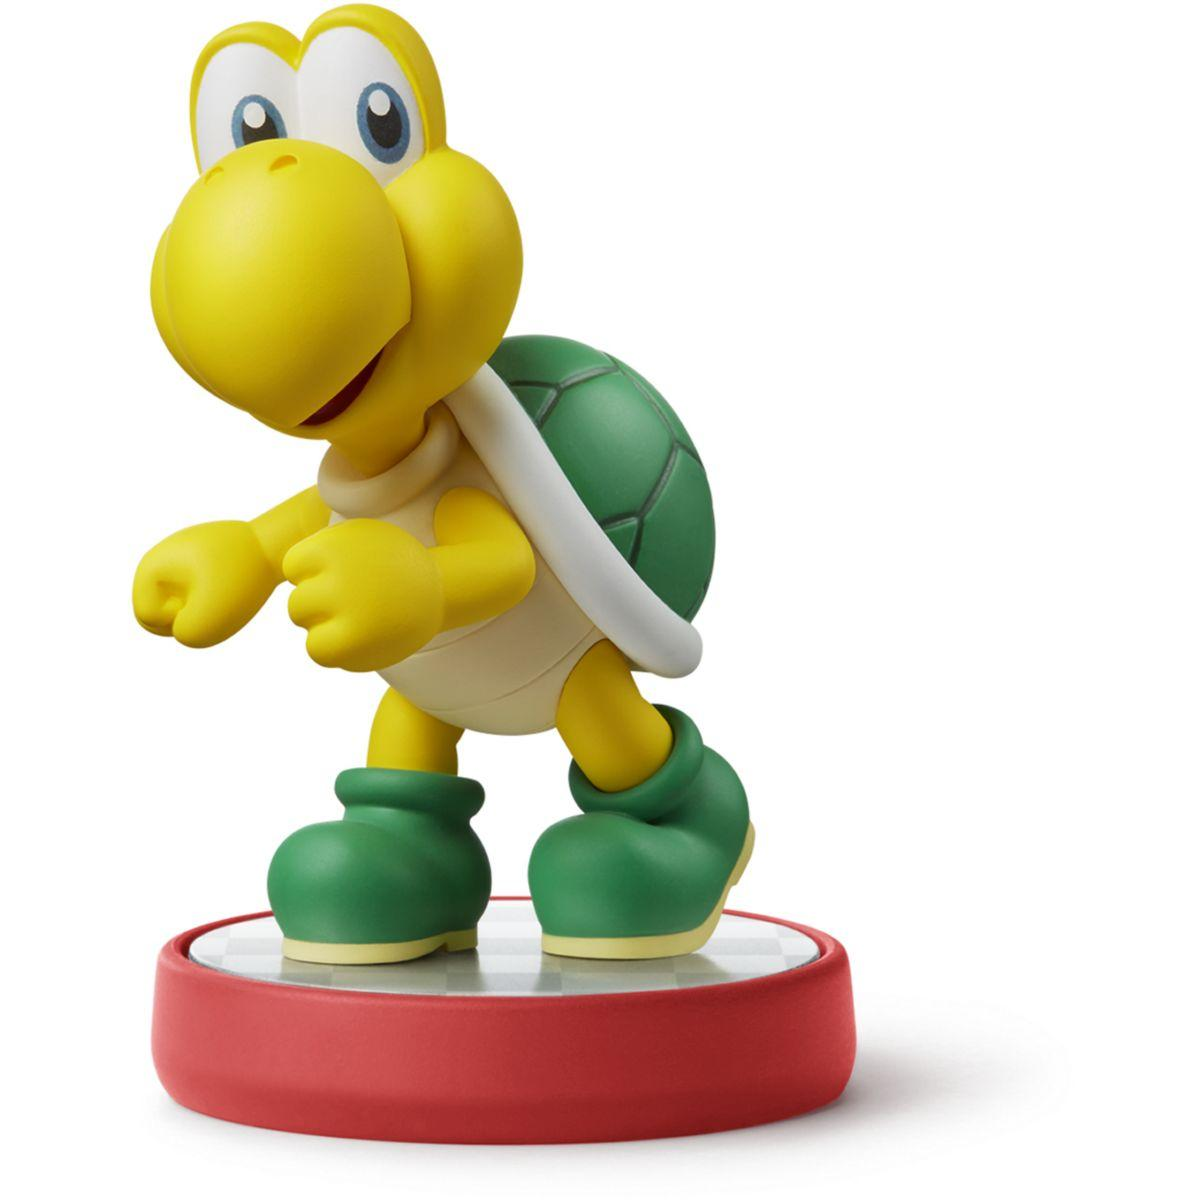 Figurine nintendo amiibo koopa troopa (photo)